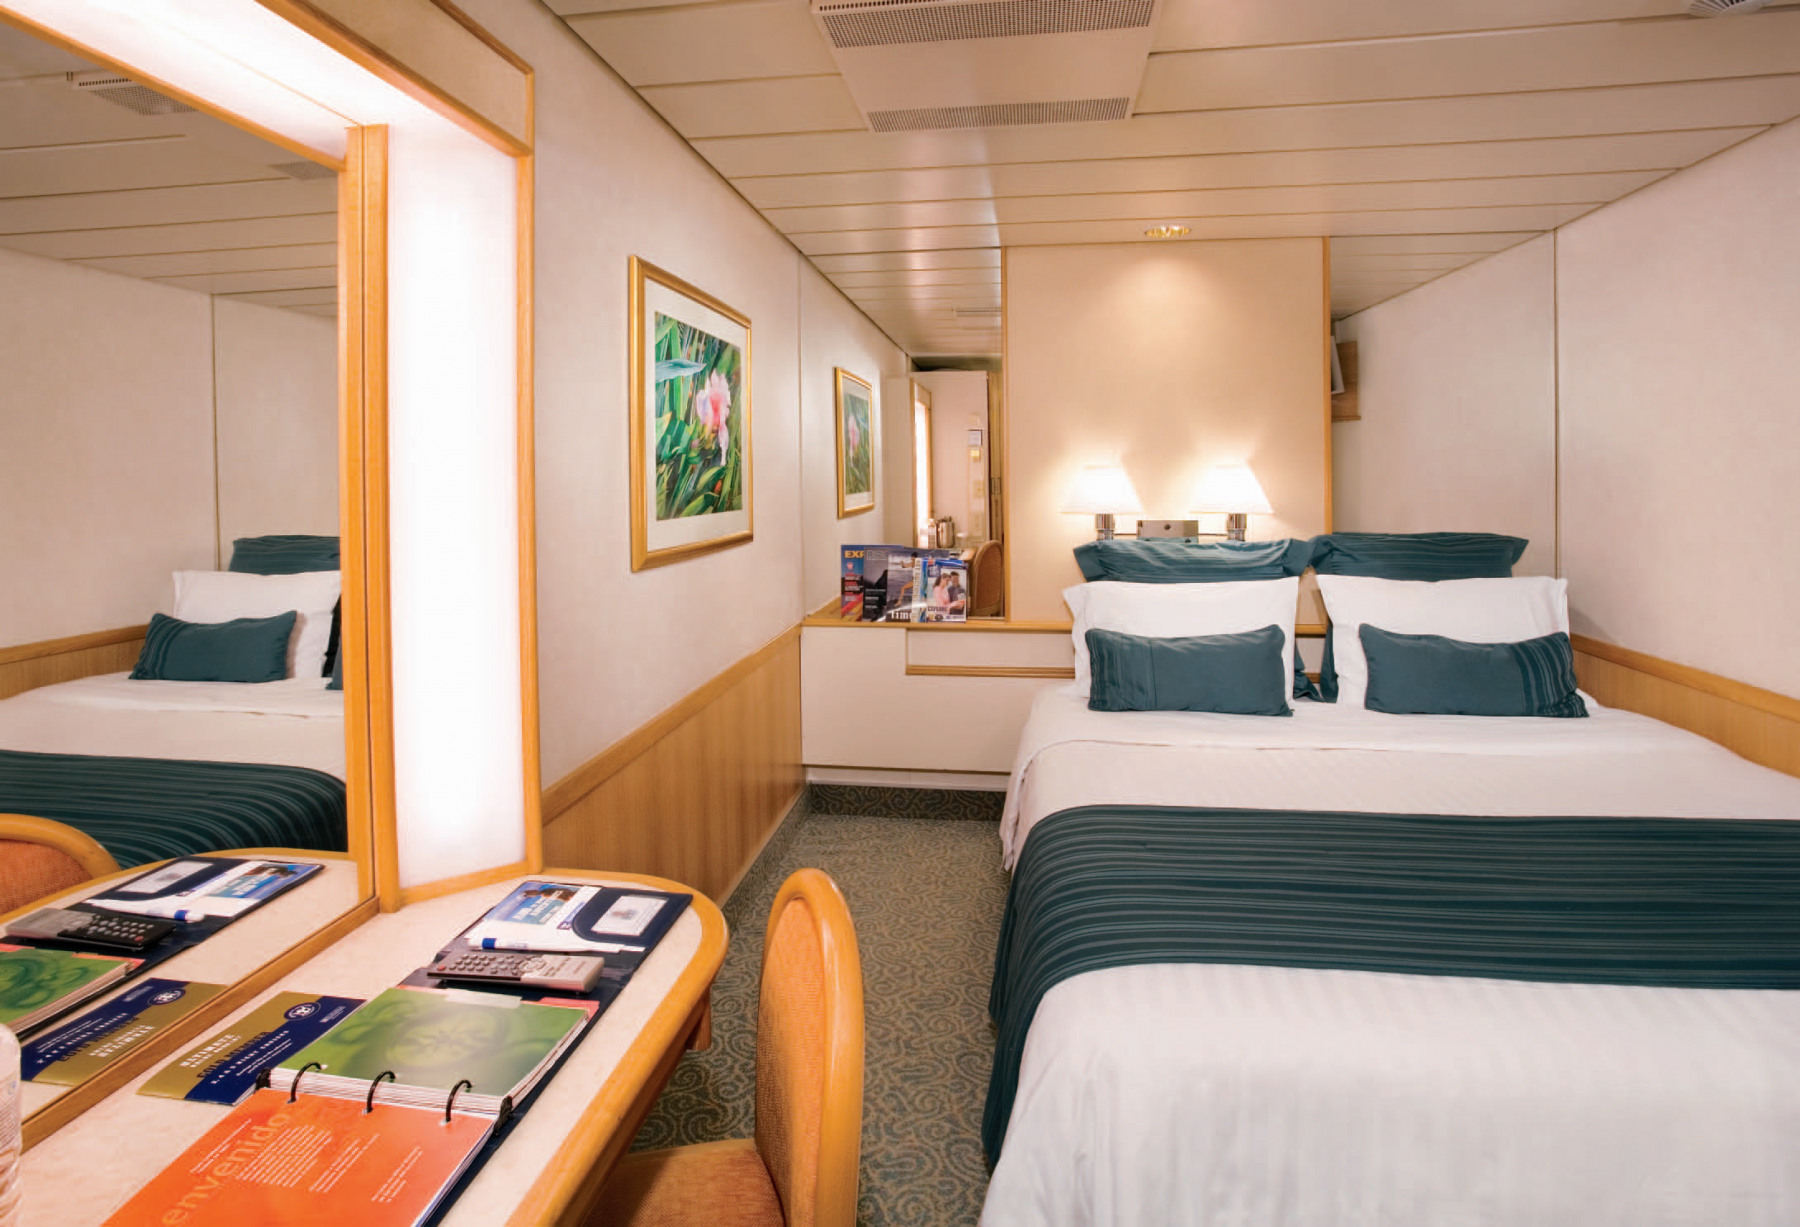 Royal Caribbean International Majesty of the Seas Accomm interior stateroom.jpg